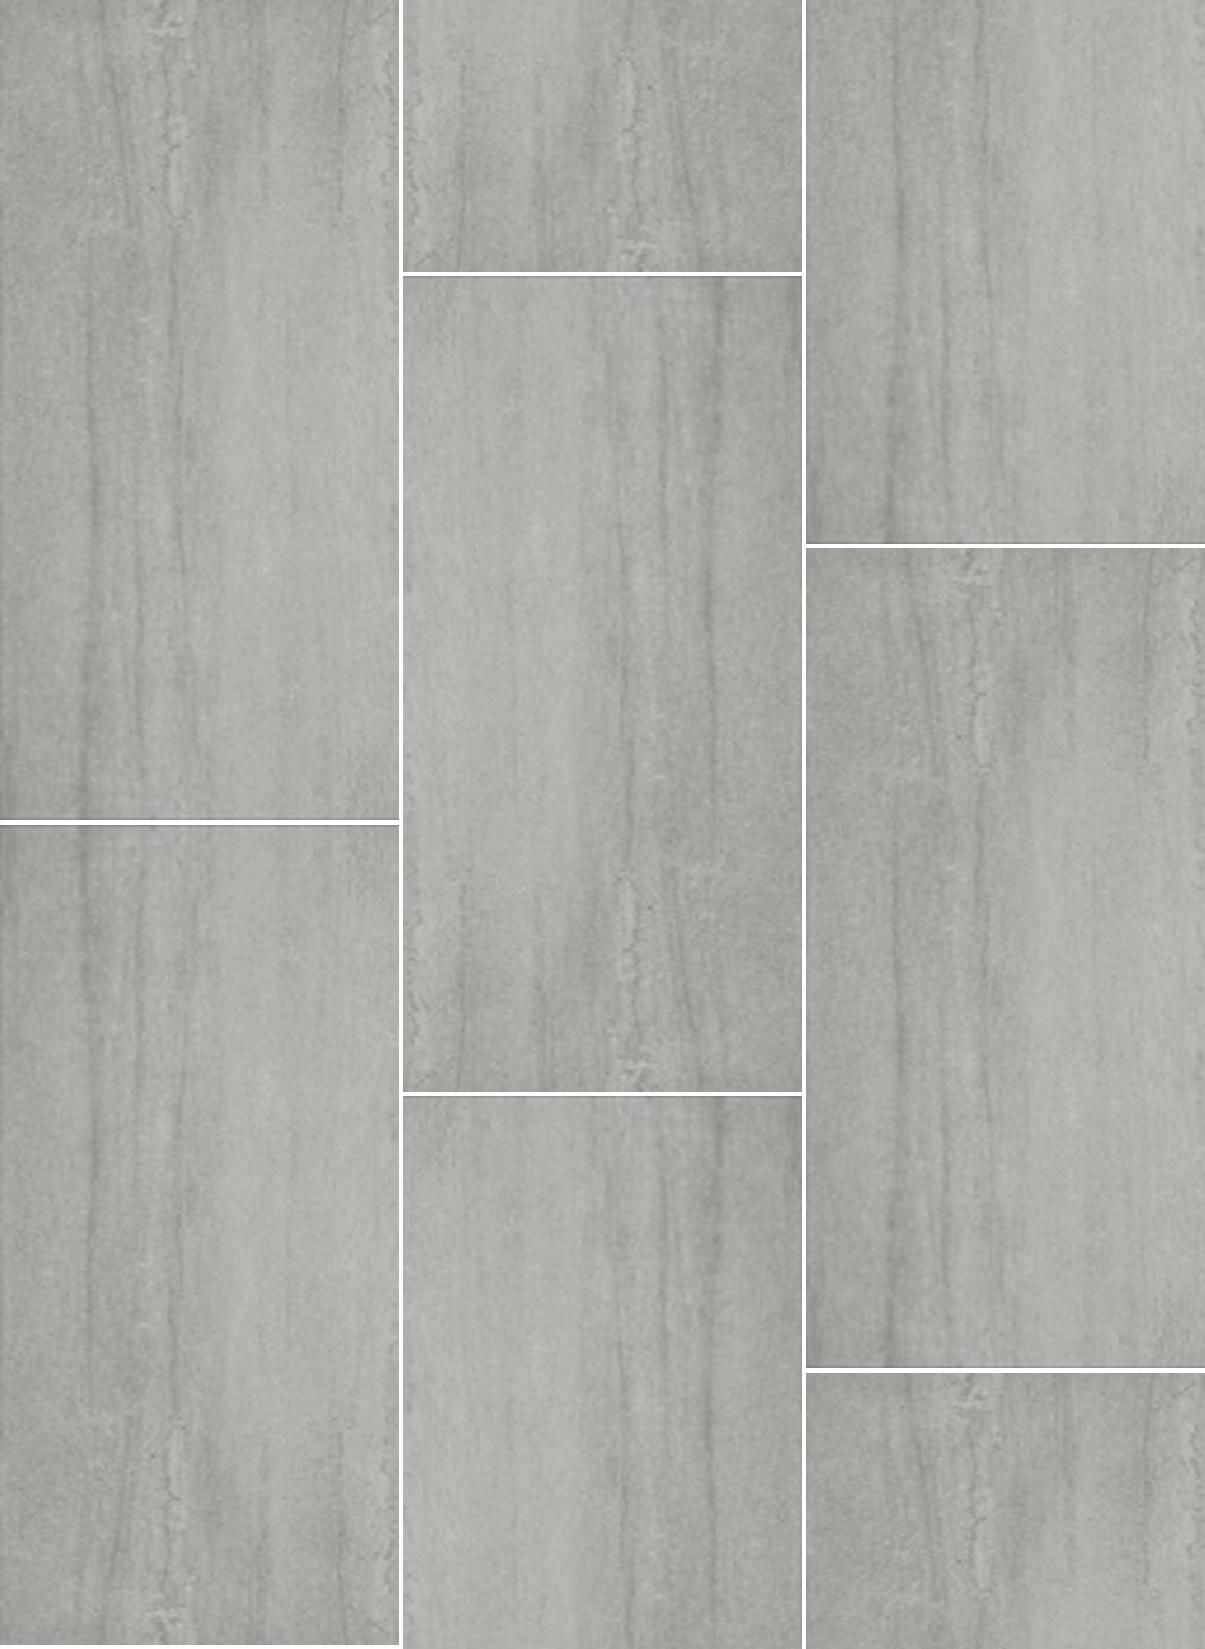 Lglimitlessdesign contest grey 12 24 floor tile nick miller design lg limitless design Bathroom flooring tile